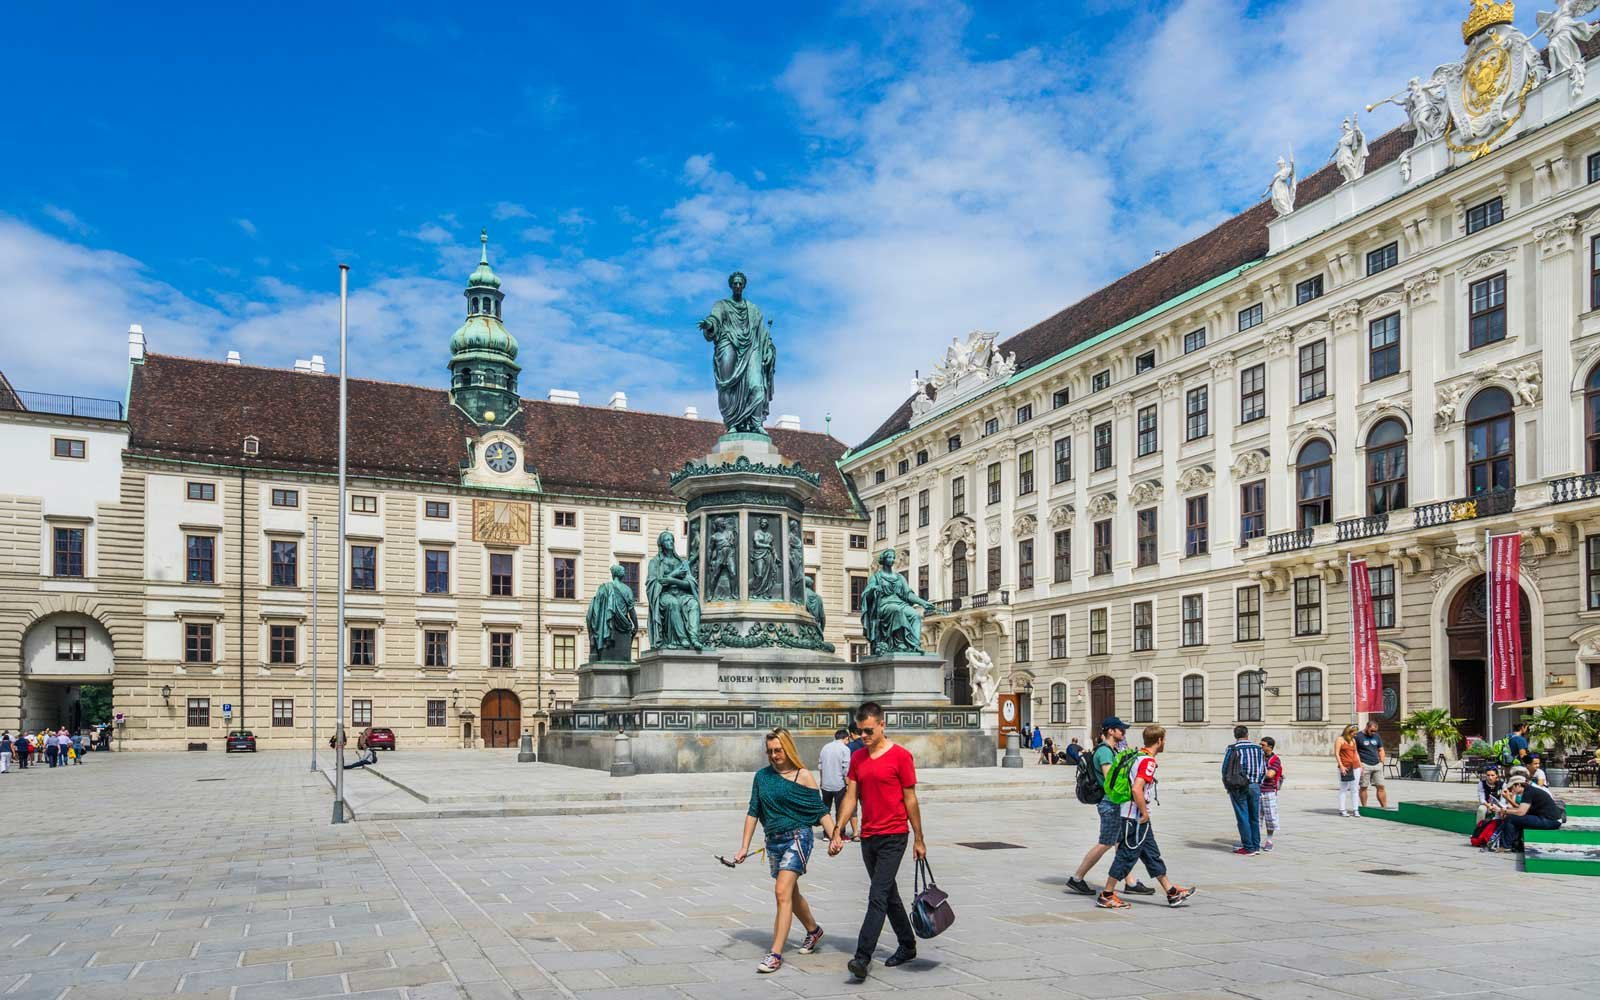 Monument to Emperor Francis at the internal Castle square against the backdrop of the Amalia Residence and Imperial Chancellery Wing, Vienna, Austria